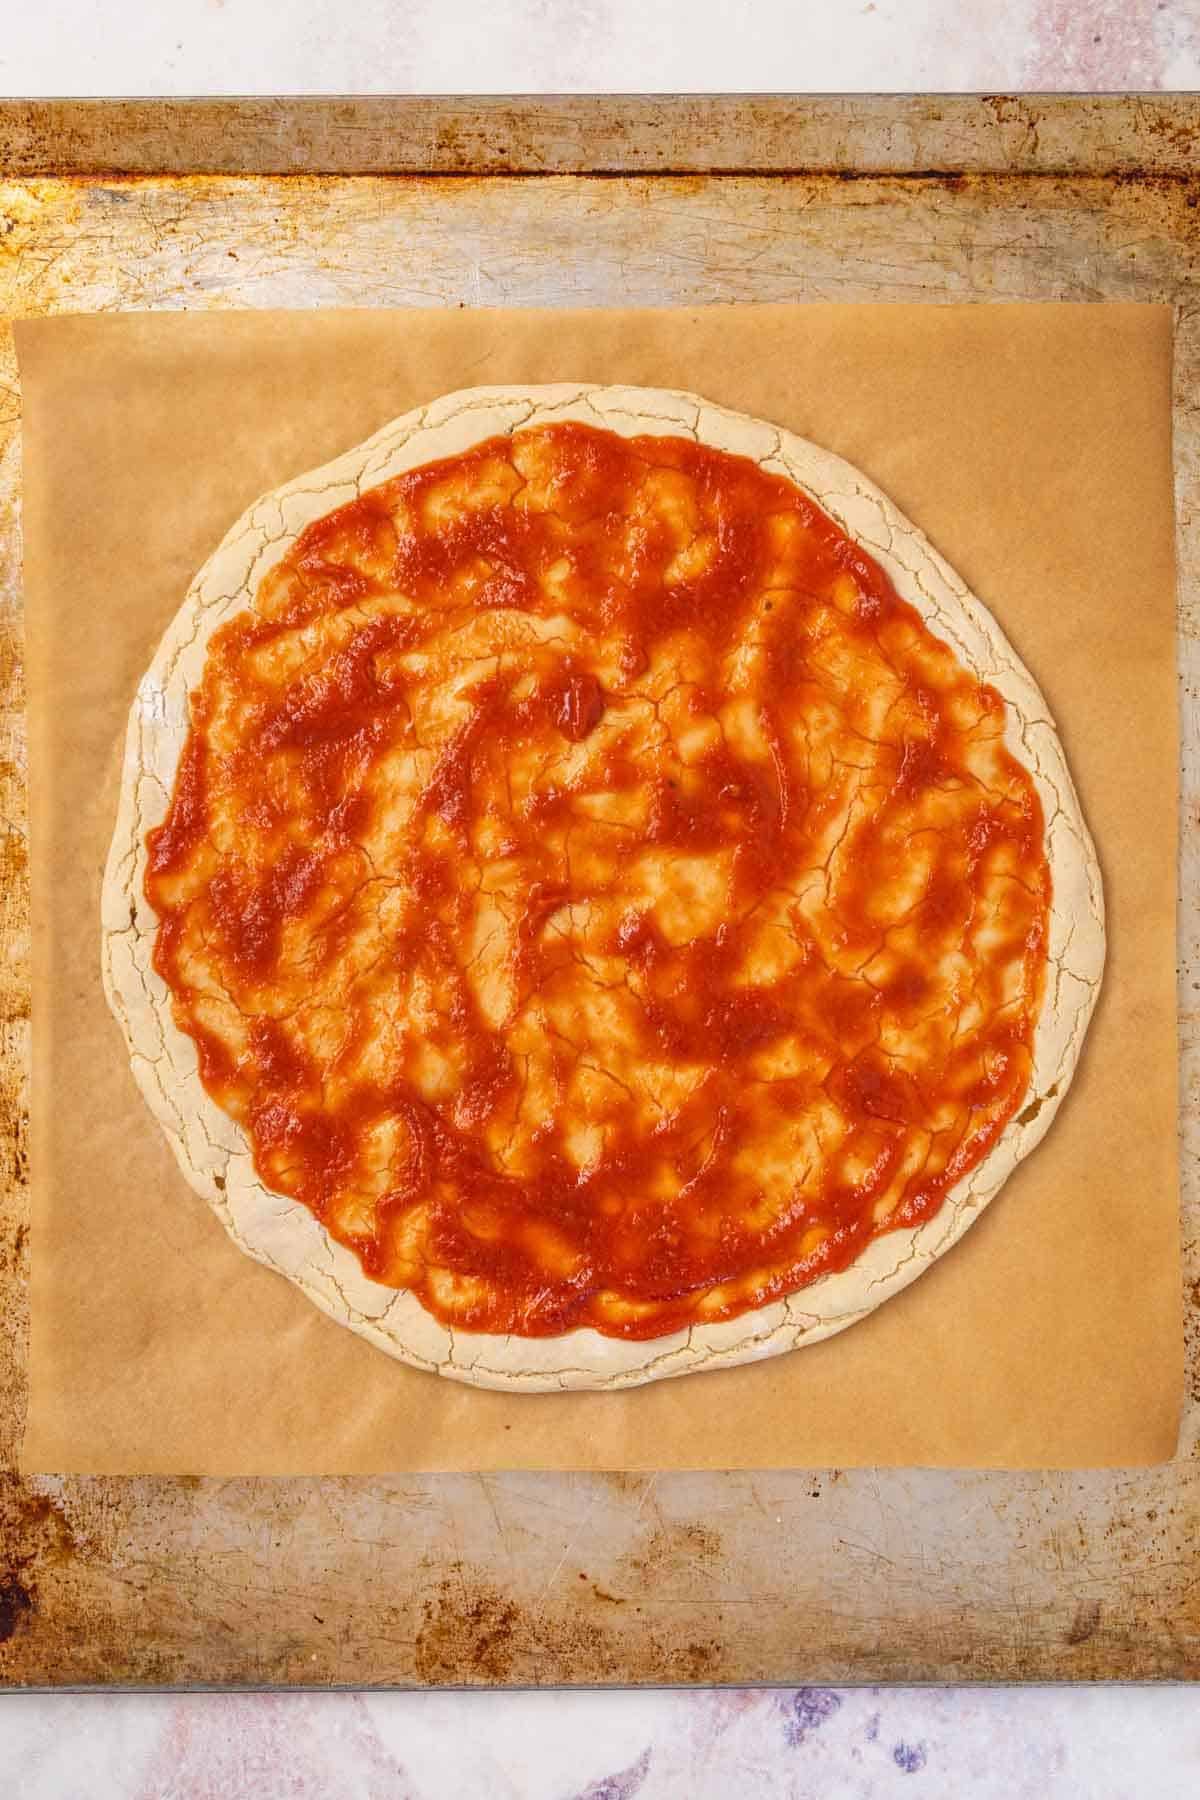 A Layer of Pizza Sauce Spread on Top of a Gluten-Free Pizza Crust